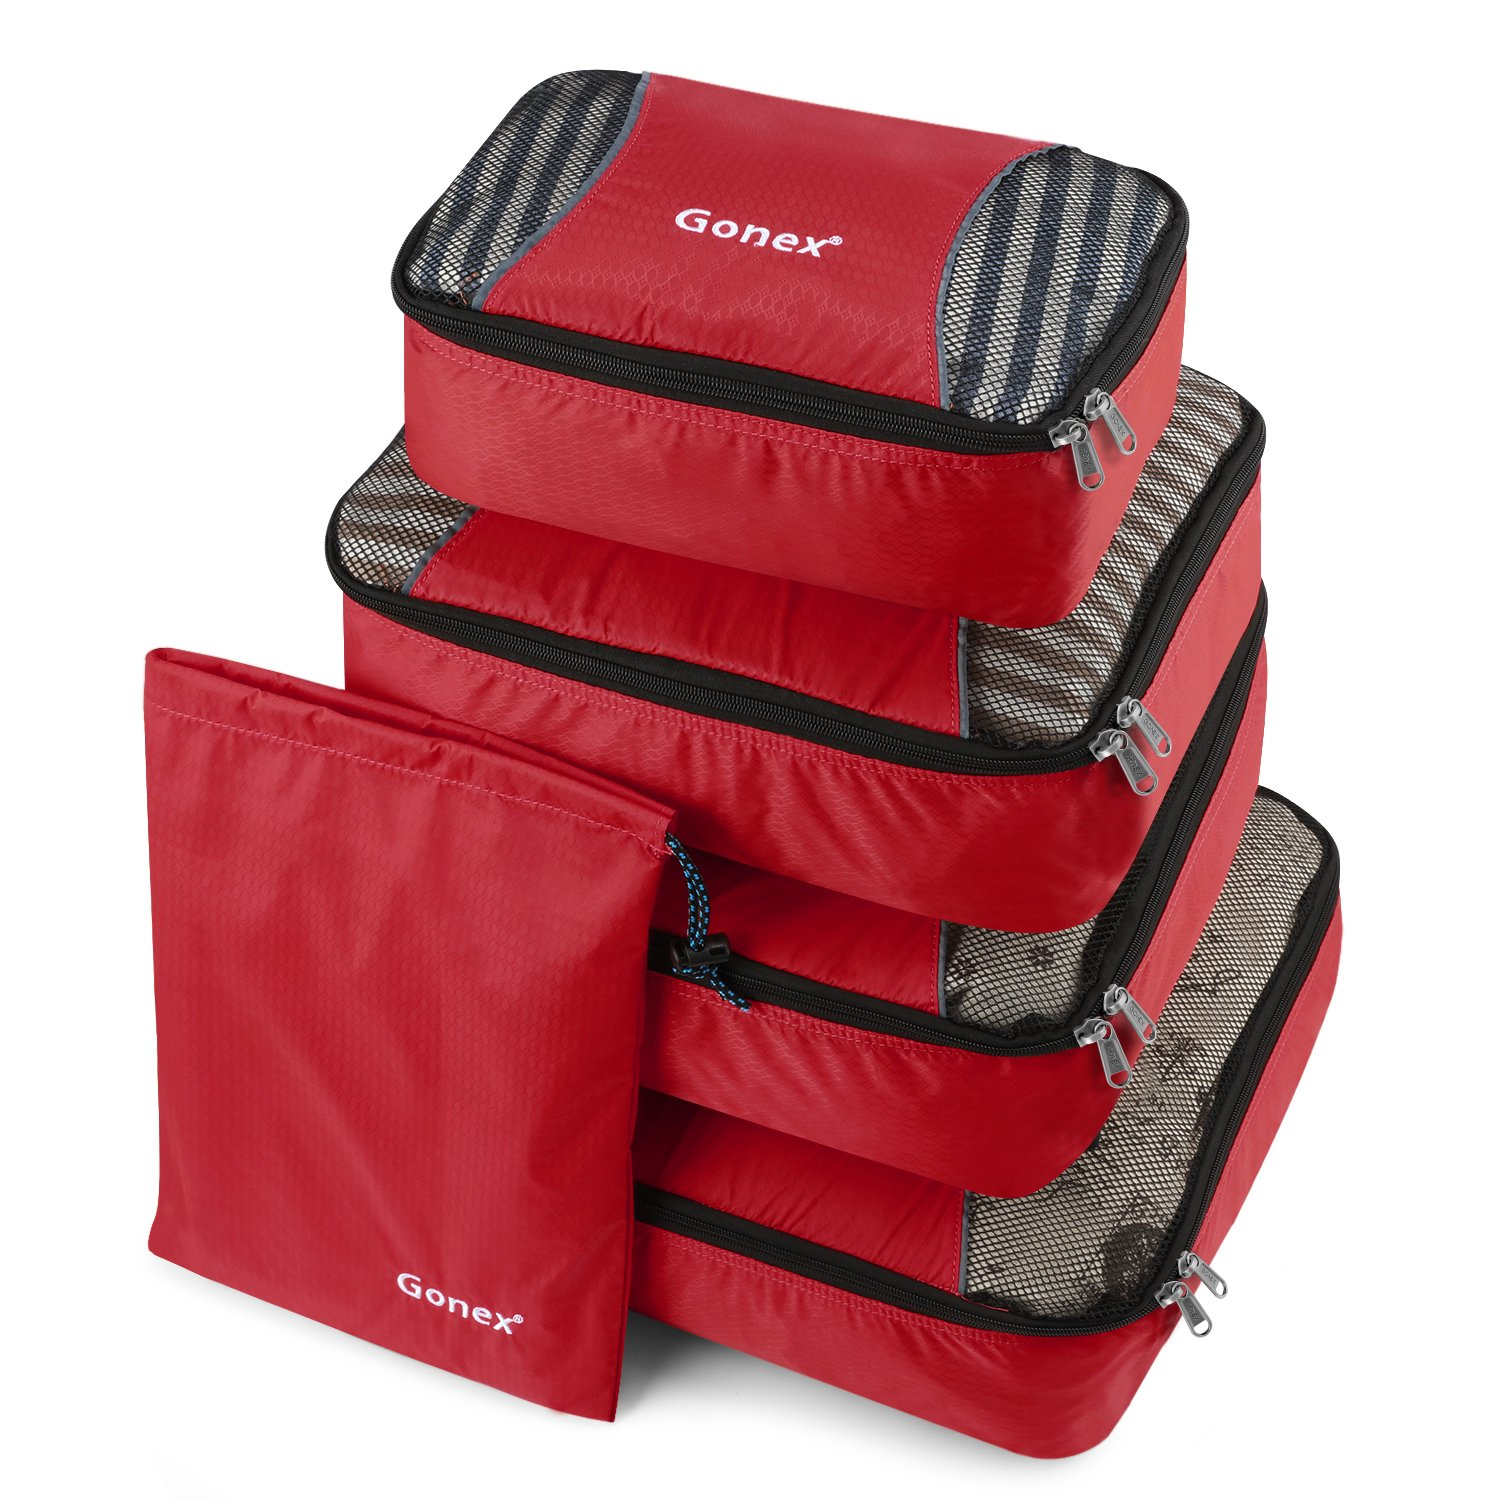 Gonex Packing Cubes Travel Luggage Packing Organizer,Laundry Bag Included (Red) product image